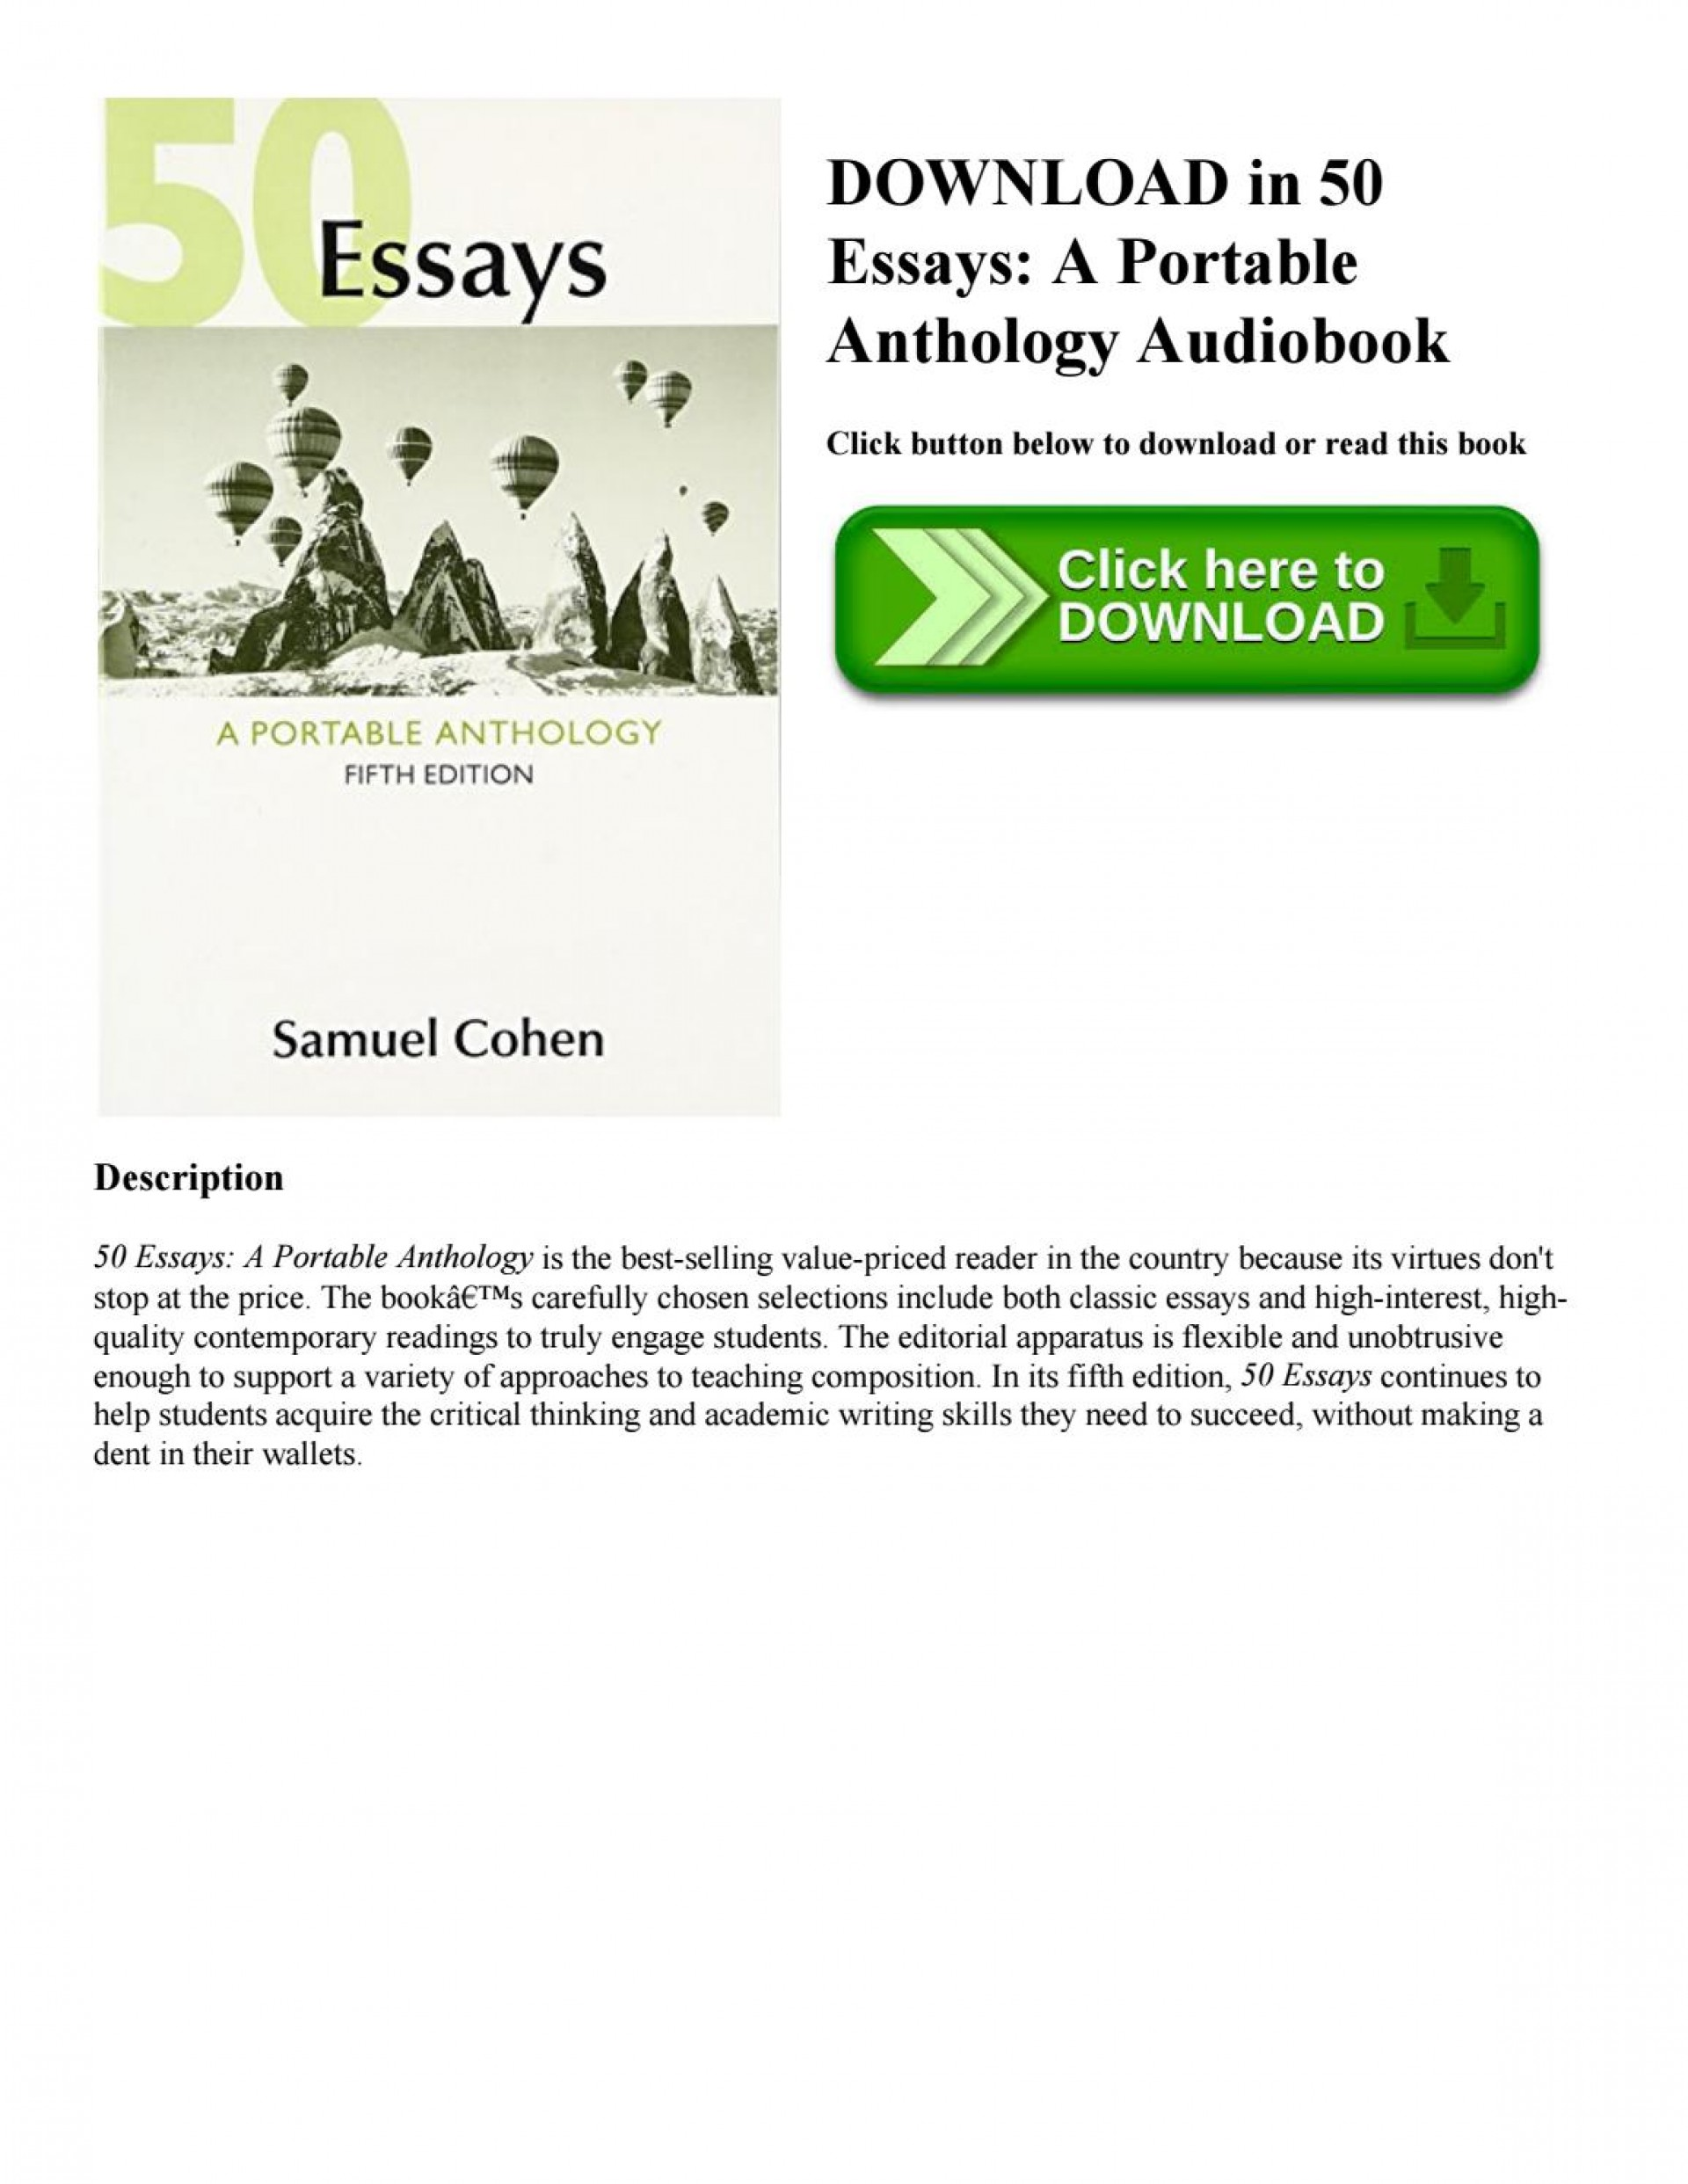 005 Essay Example Essays Portable Anthology 5th Edition Pdf Page 1 Fascinating 50 A 1920